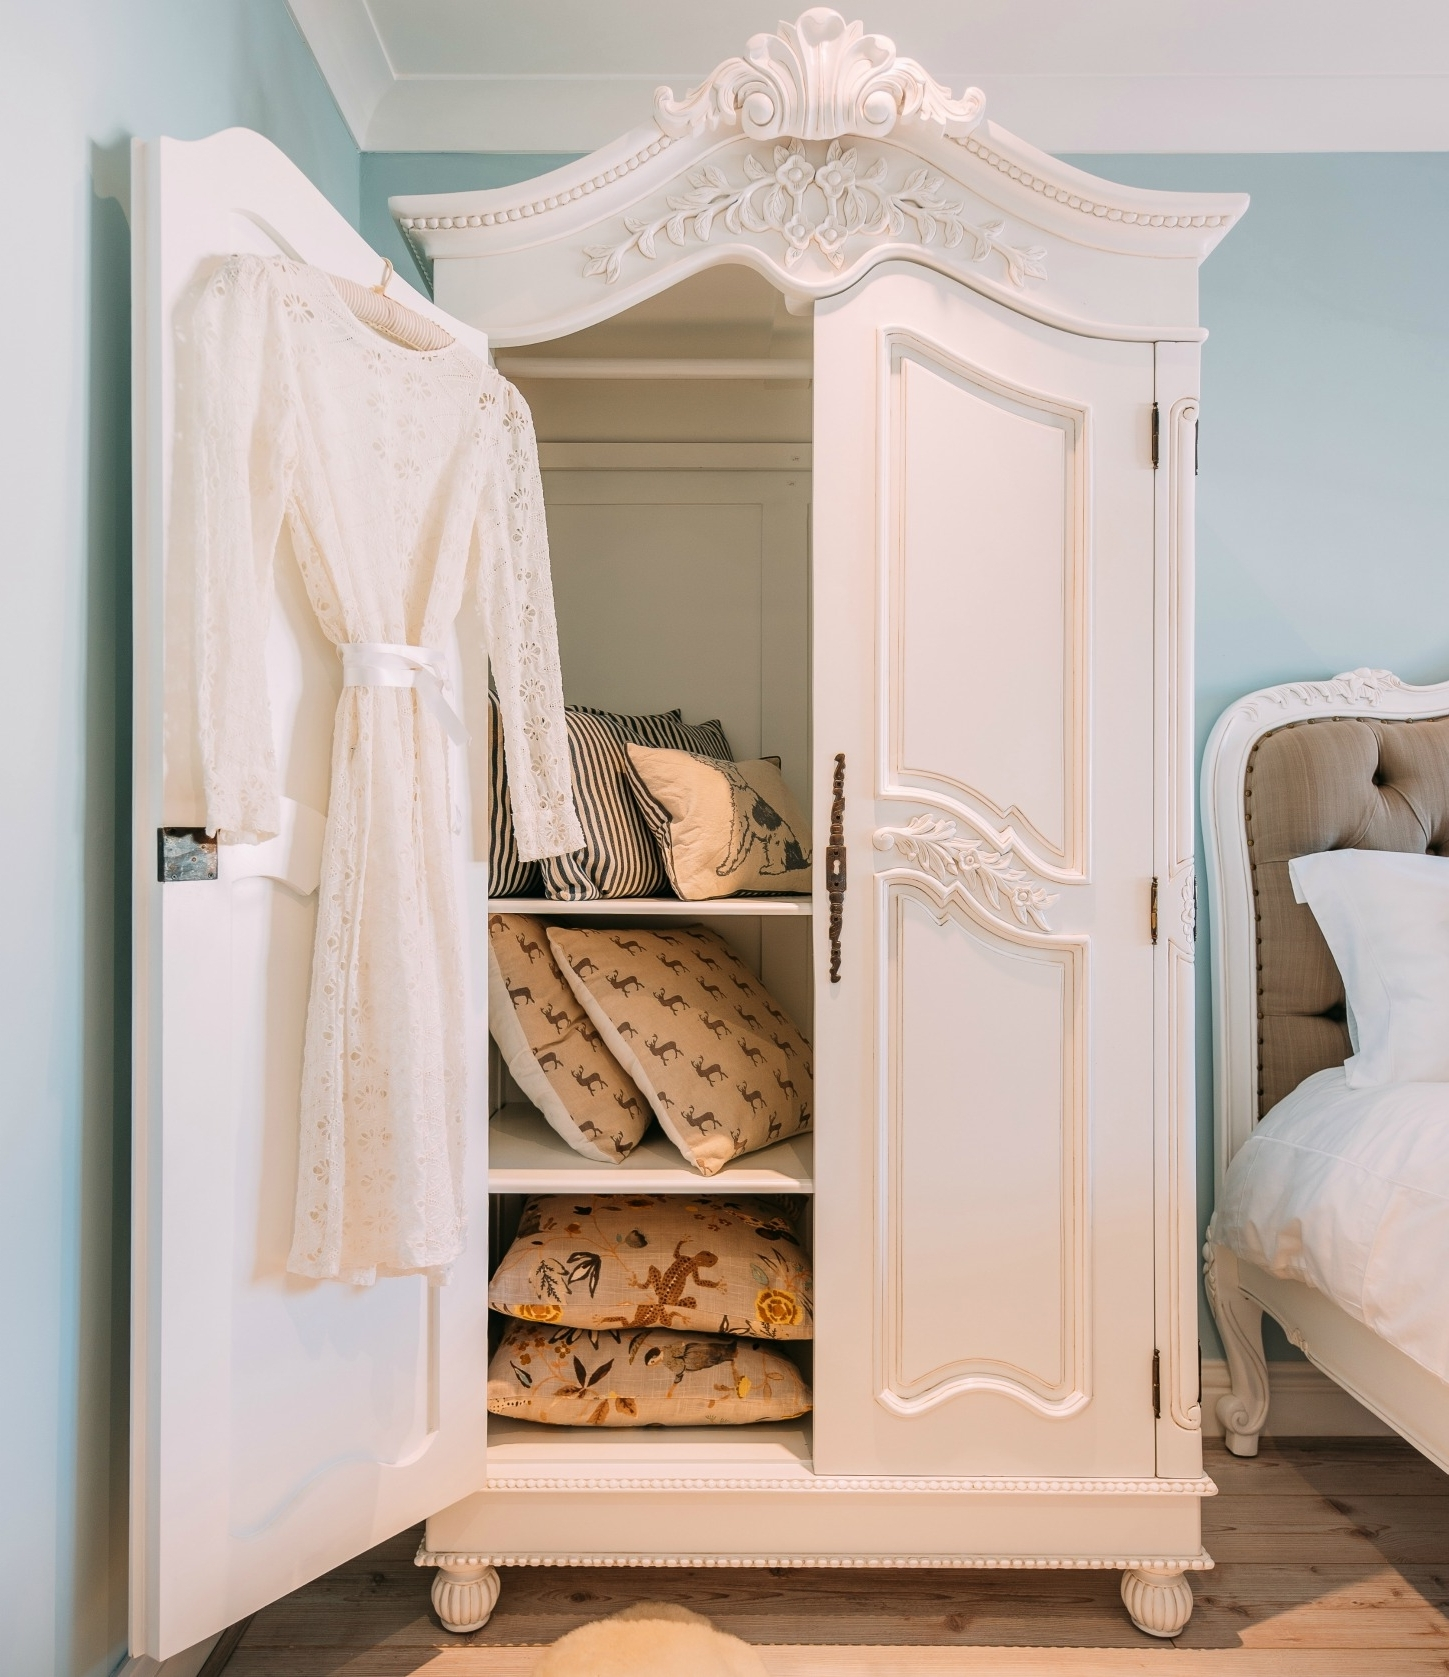 French White Hand Carved Double Armoire Wardrobe Furniture – La Regarding Latest Armoire French Wardrobes (View 3 of 15)